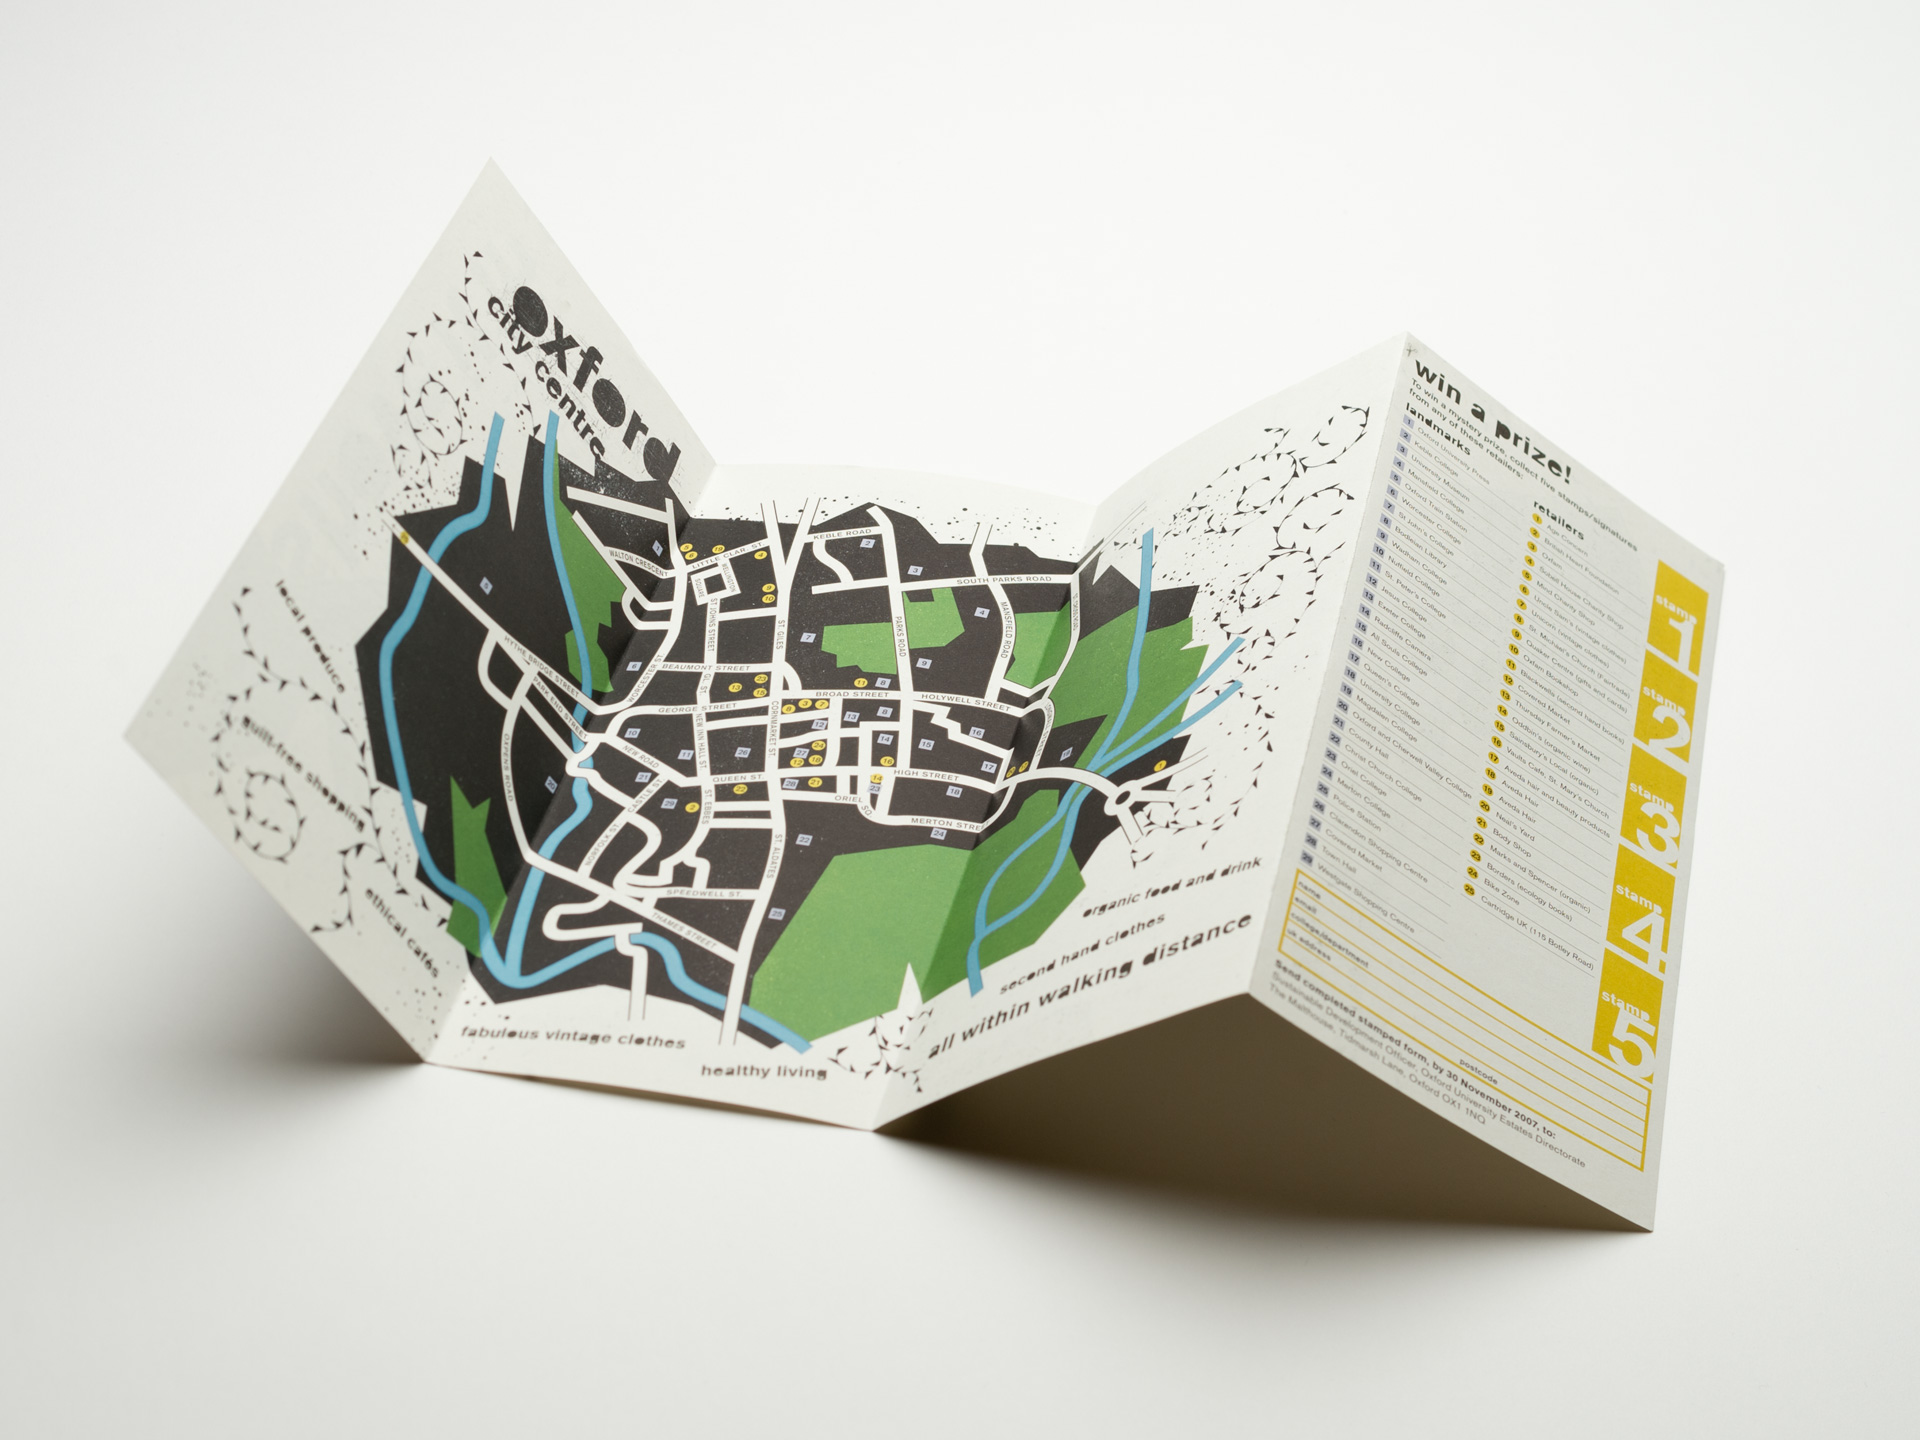 Oxford University Map Design   Mercer Design